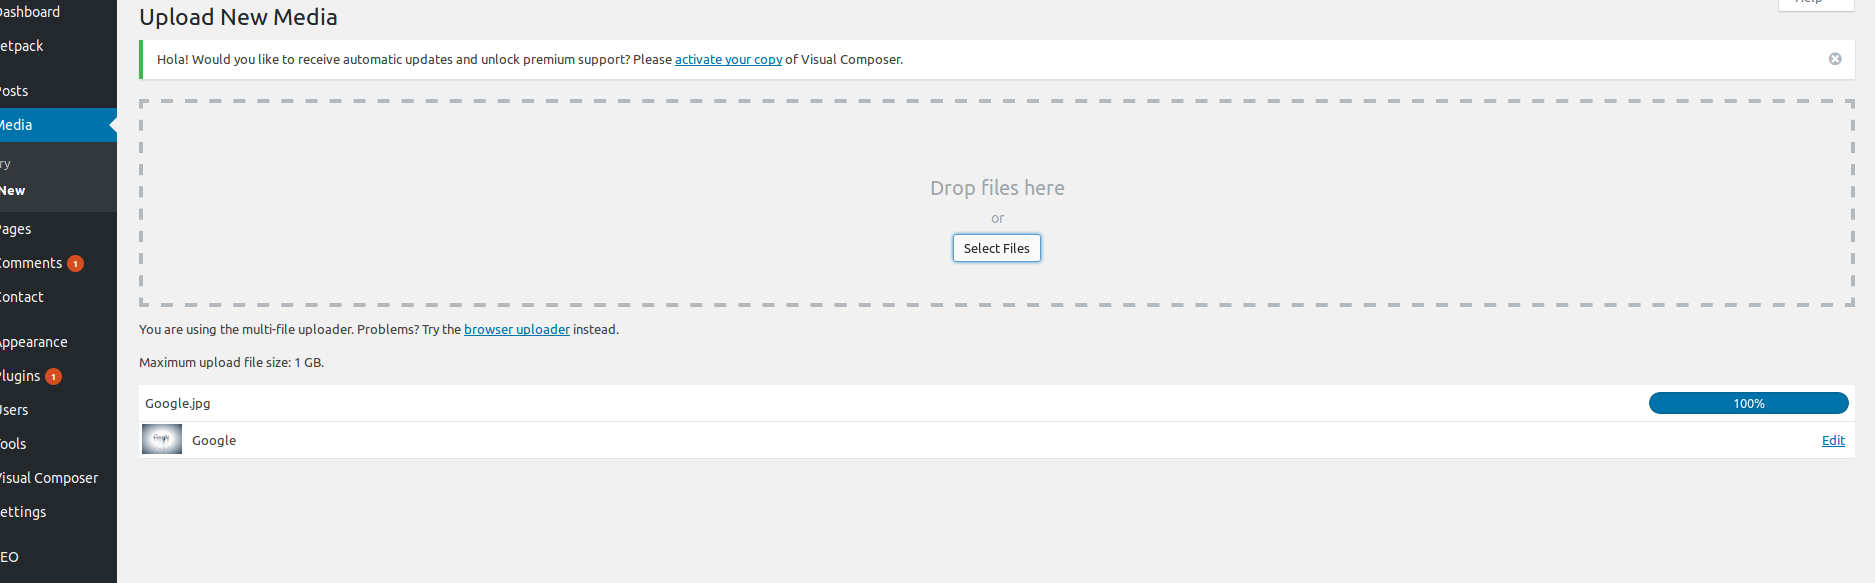 HTTP error while image upload in WordPress : Resolved